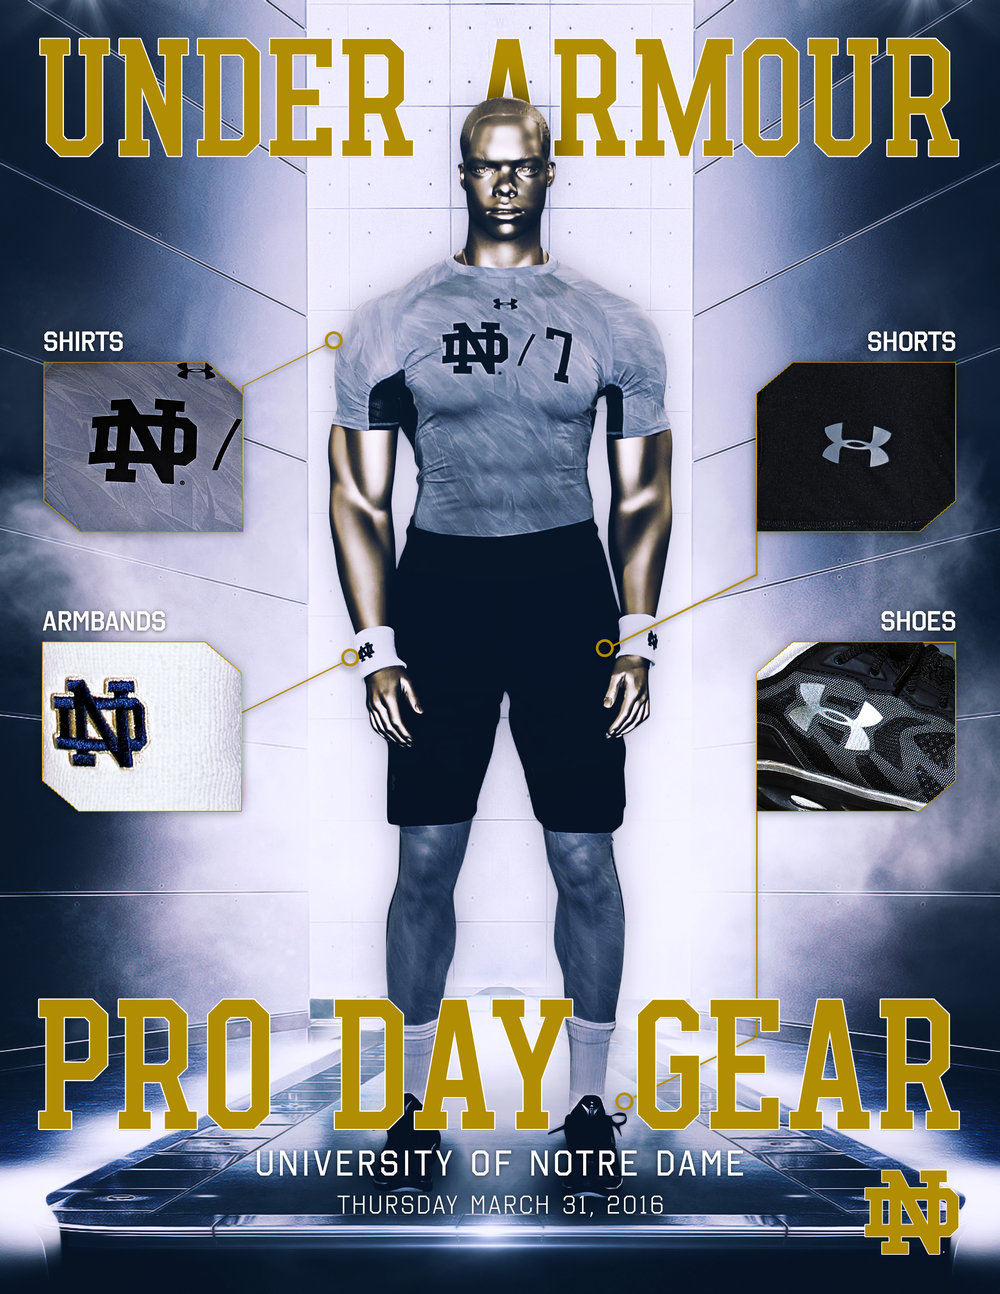 Notre Dame Pro Day Gear